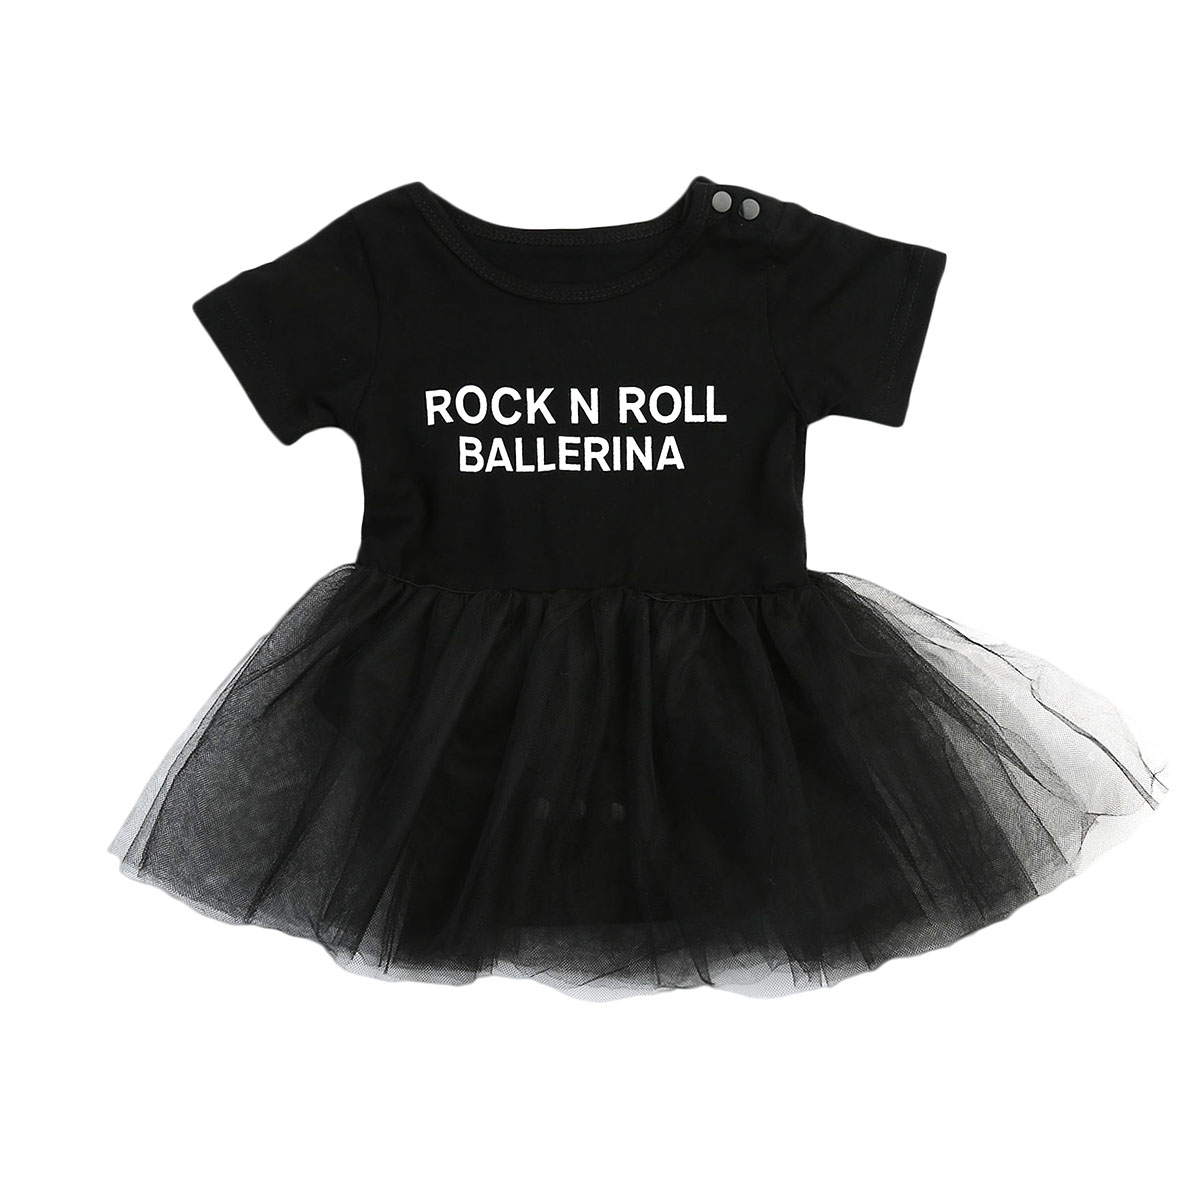 Pudcoco Infant Baby Girl Clothes Tulle Rock N Roll  Letter Print Romper Dress Princess Tulle Lace Dress Outfit Set 0-3Y girl o clock rock подарочный набор